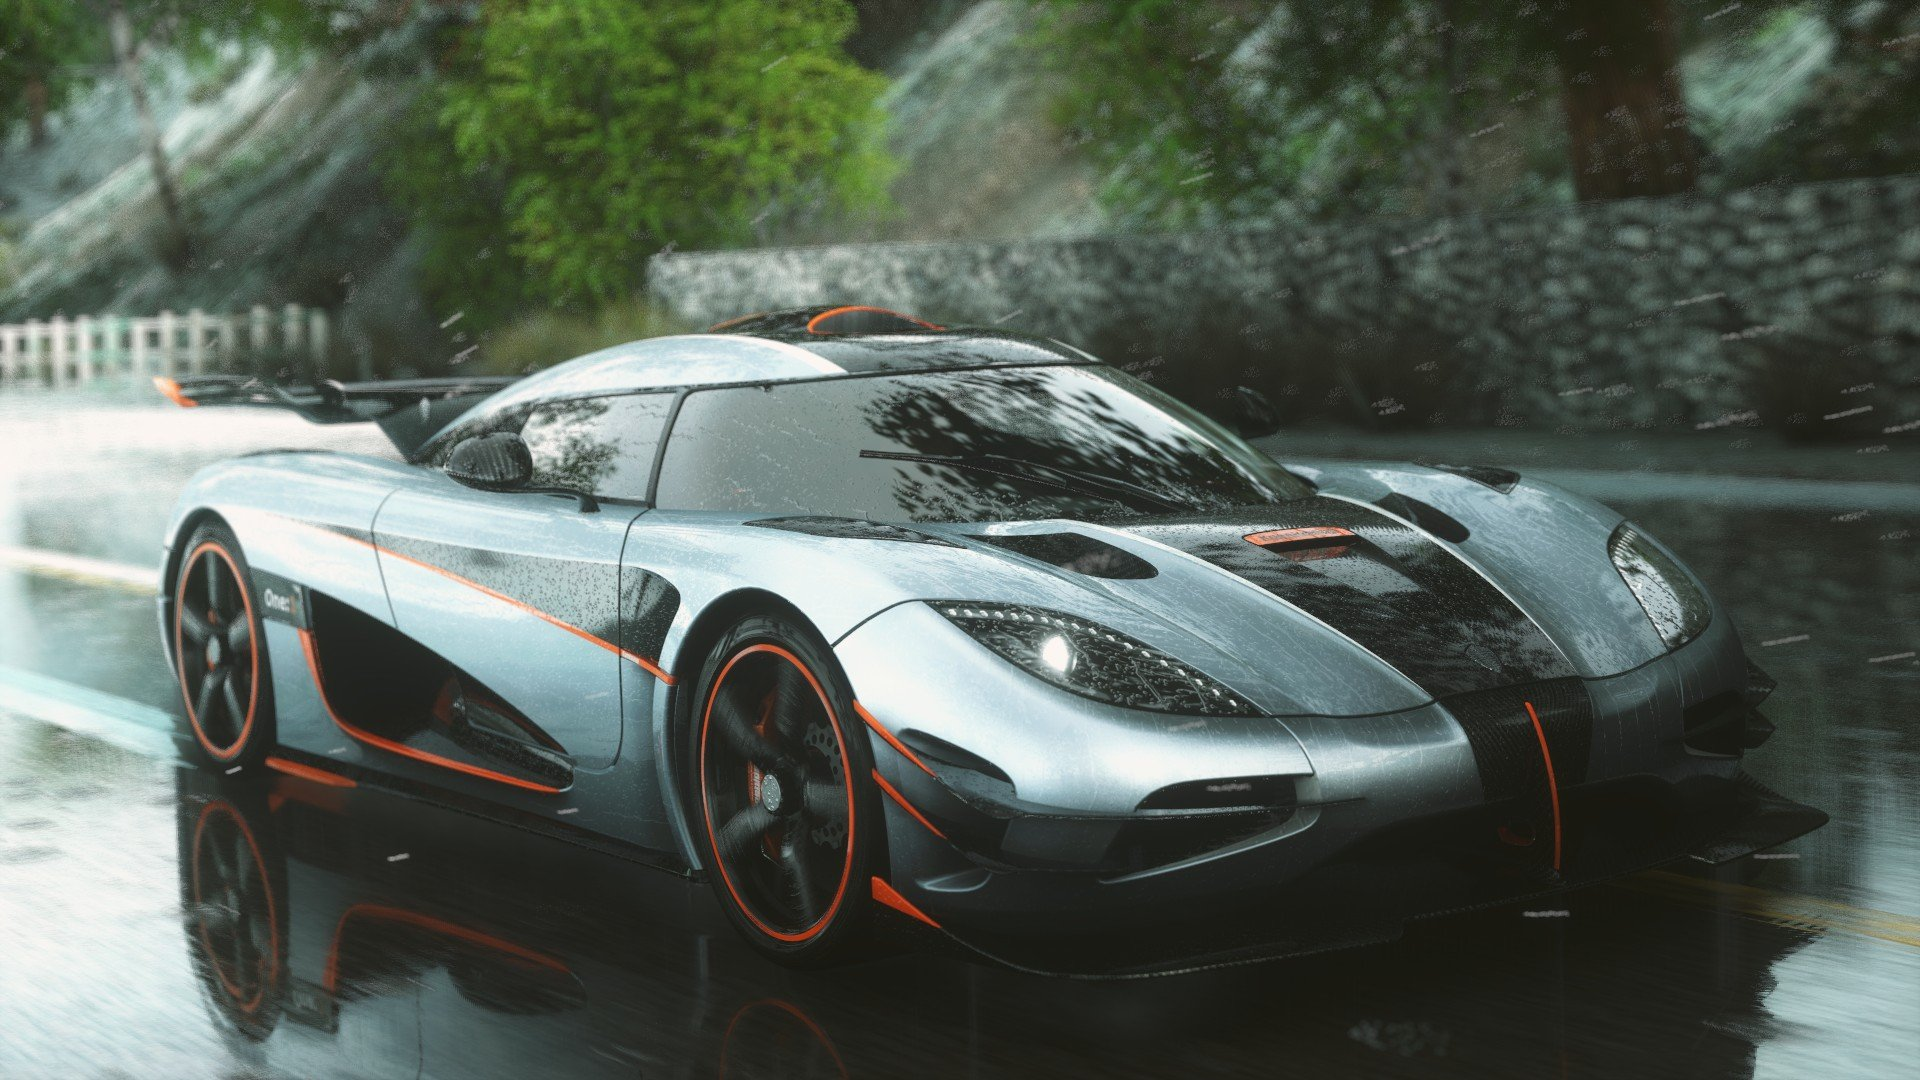 Racing Car Games Hd Wallpaper: Driveclub, Car, Race Cars, Video Games HD Wallpapers